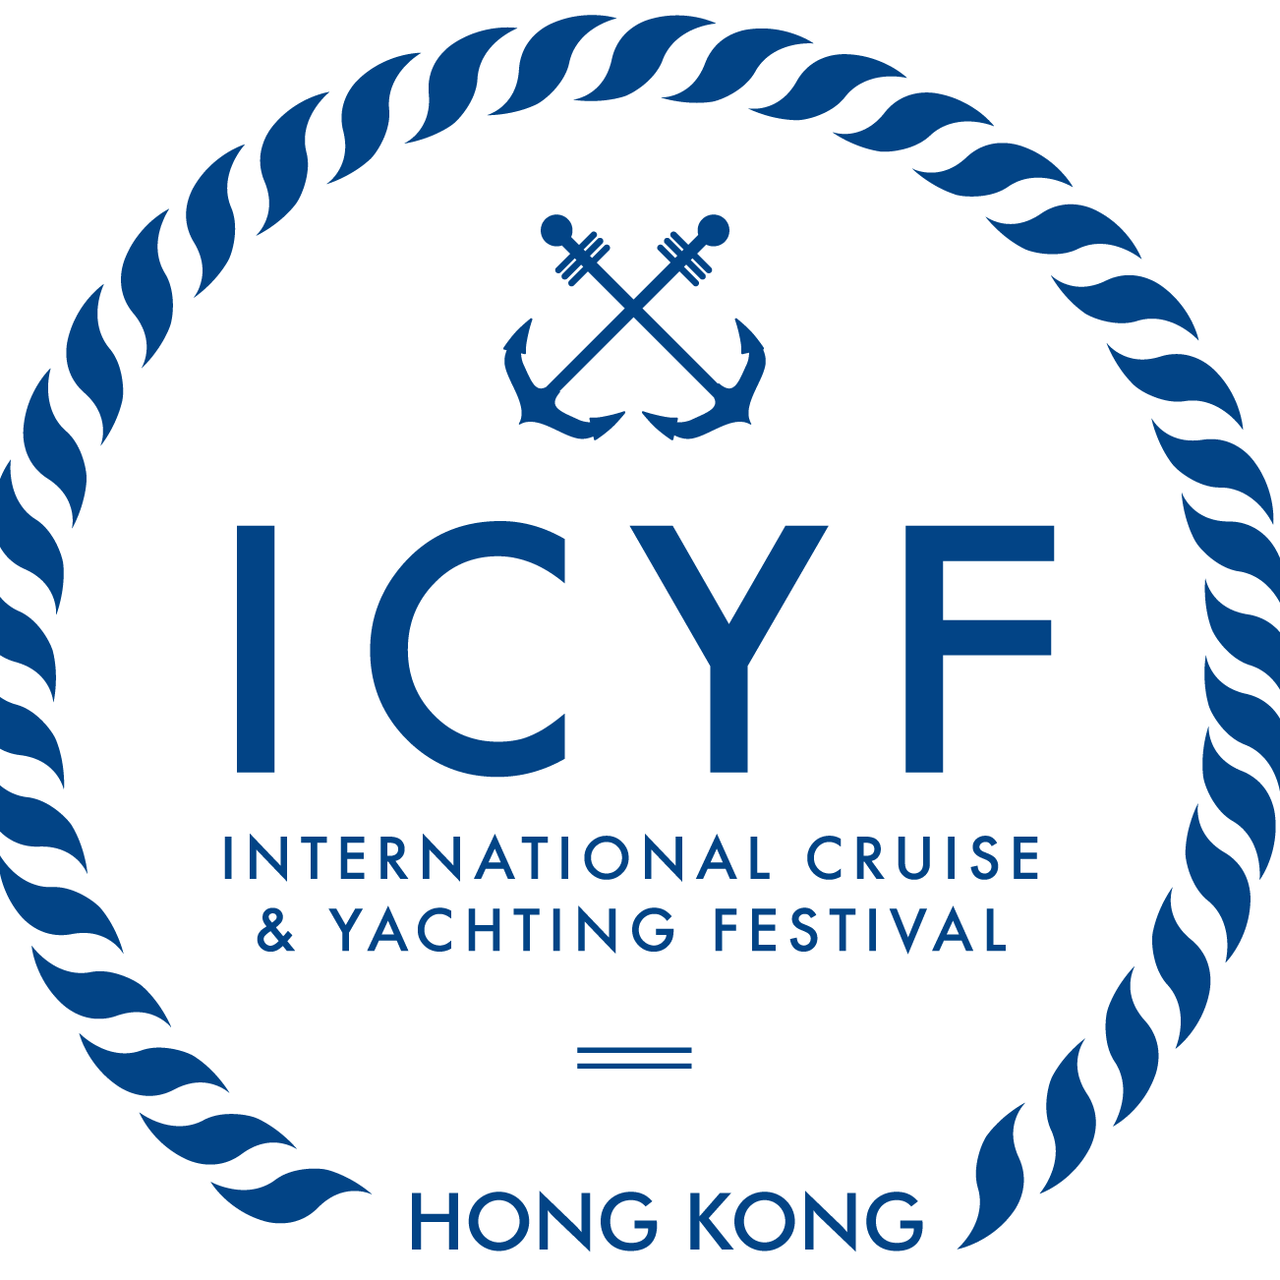 International Cruise & Yachting Festival  | Hong Kong | Asia Yachting